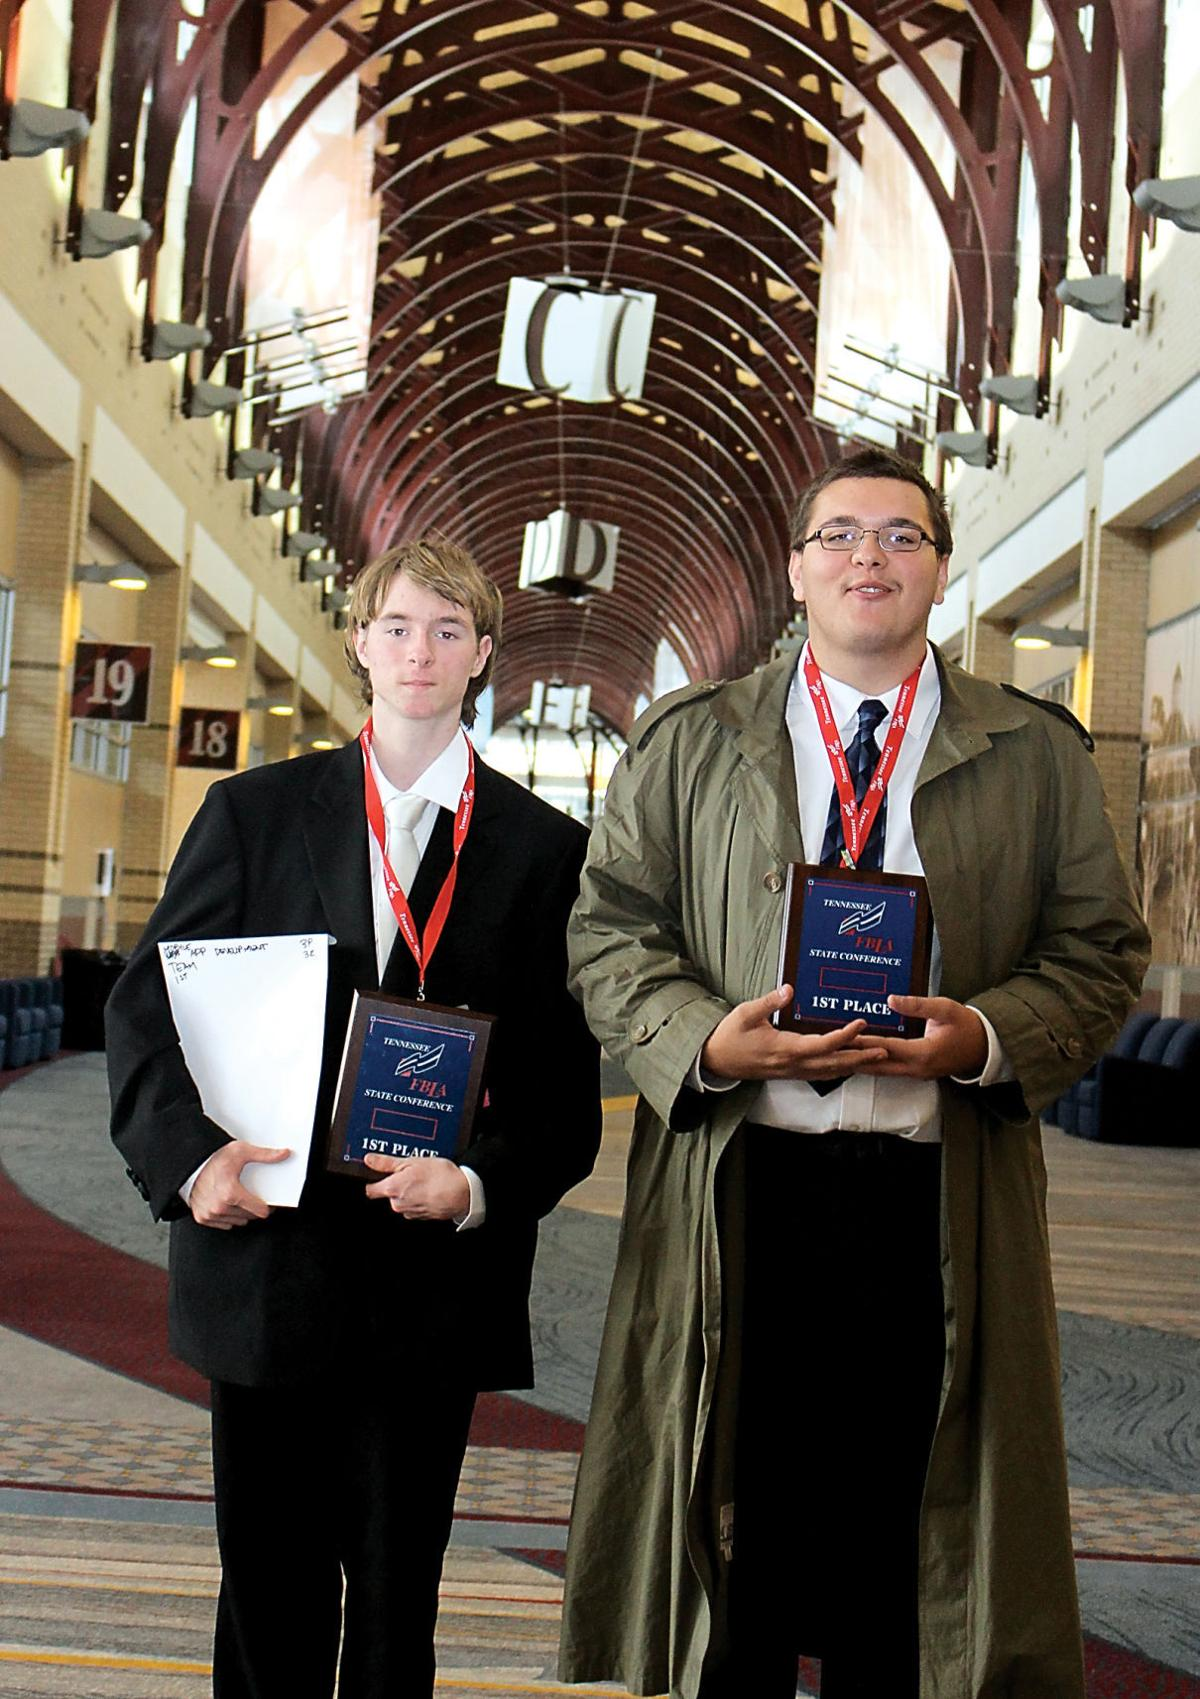 Heritage High School's Zackery Fleming and Ryan Ridenour, mobile app developers